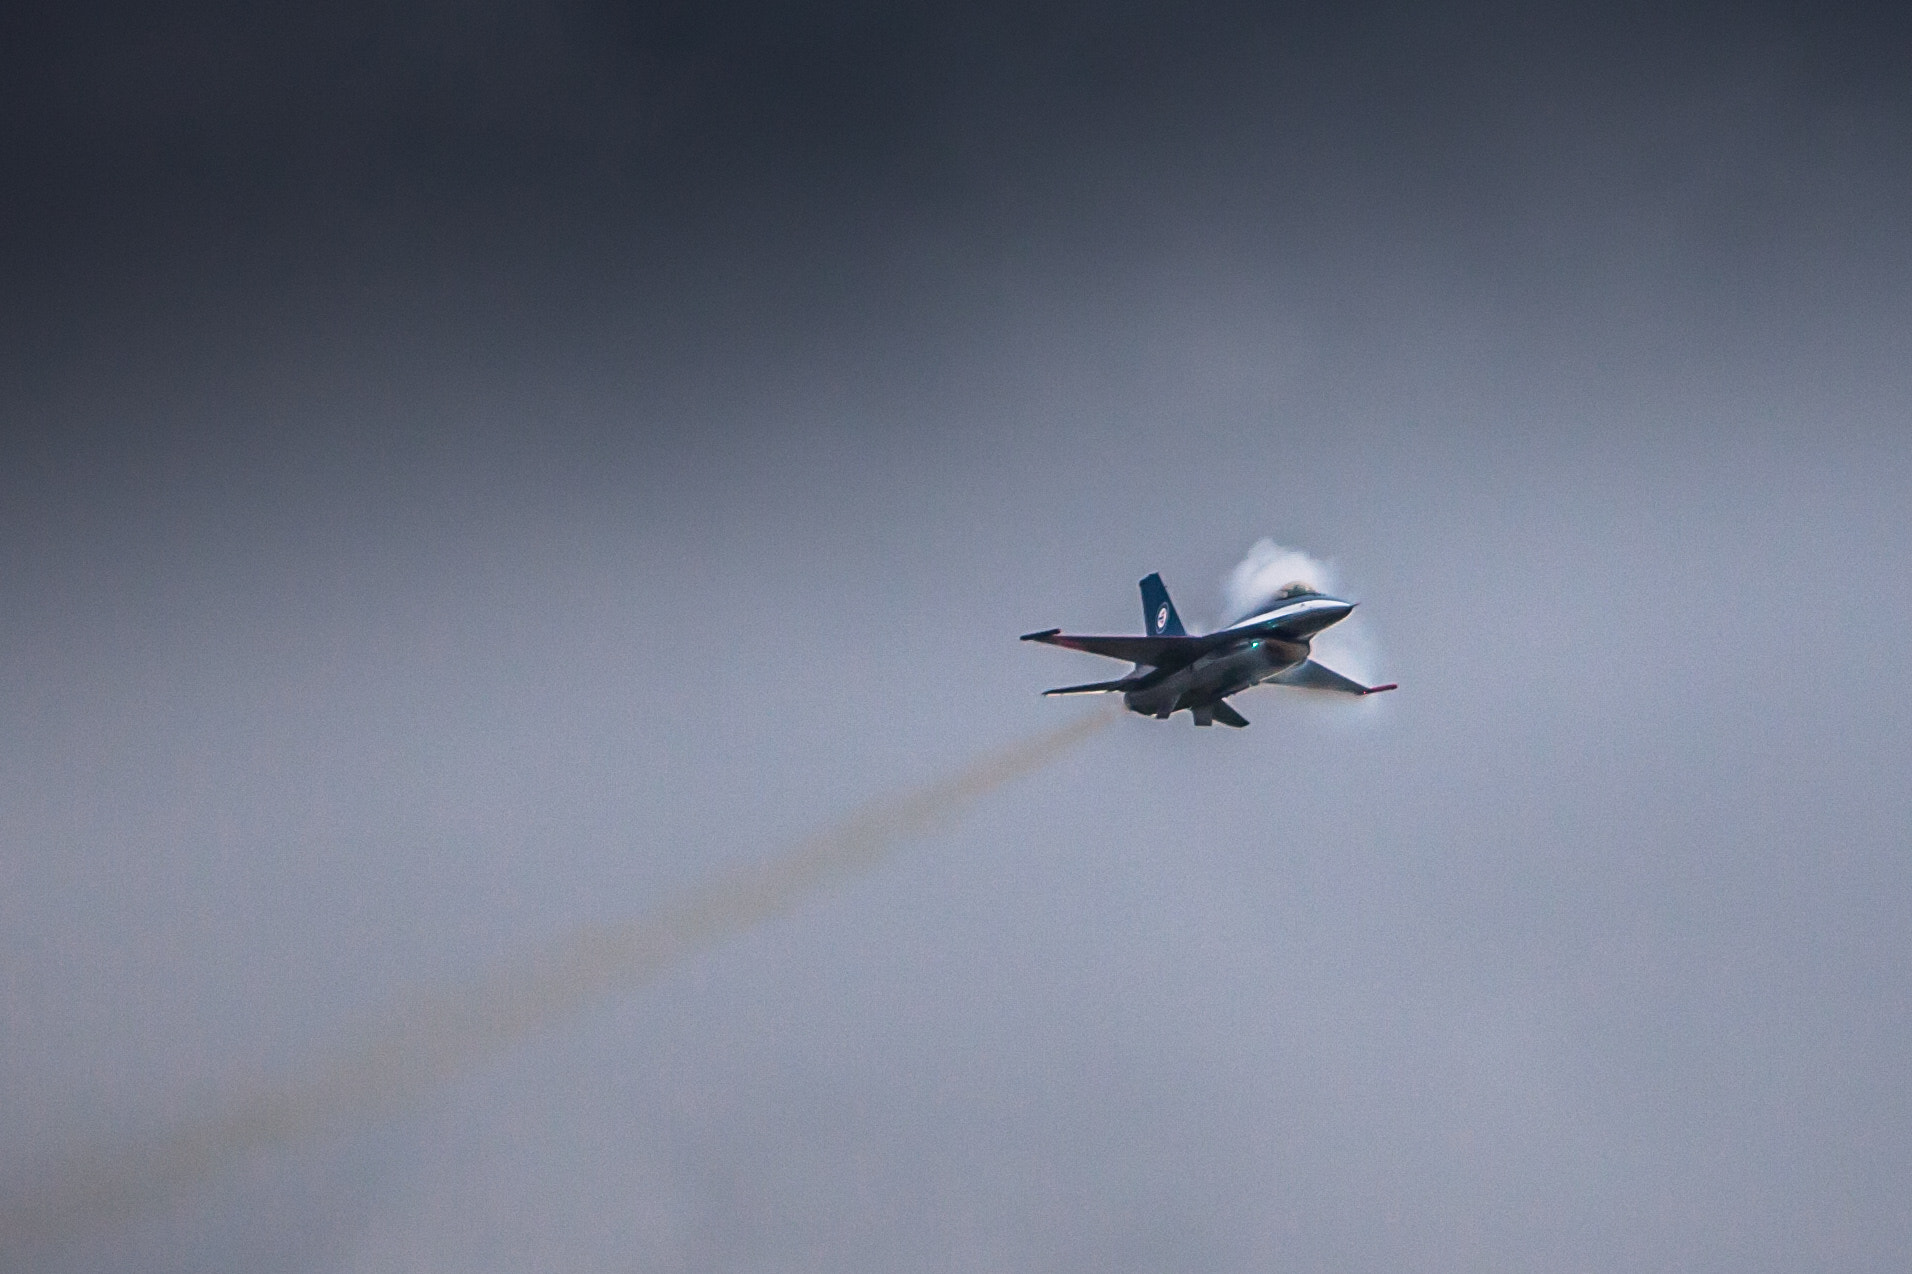 Photograph F16 - Touching the sound barrier by Henry Leirvoll on 500px